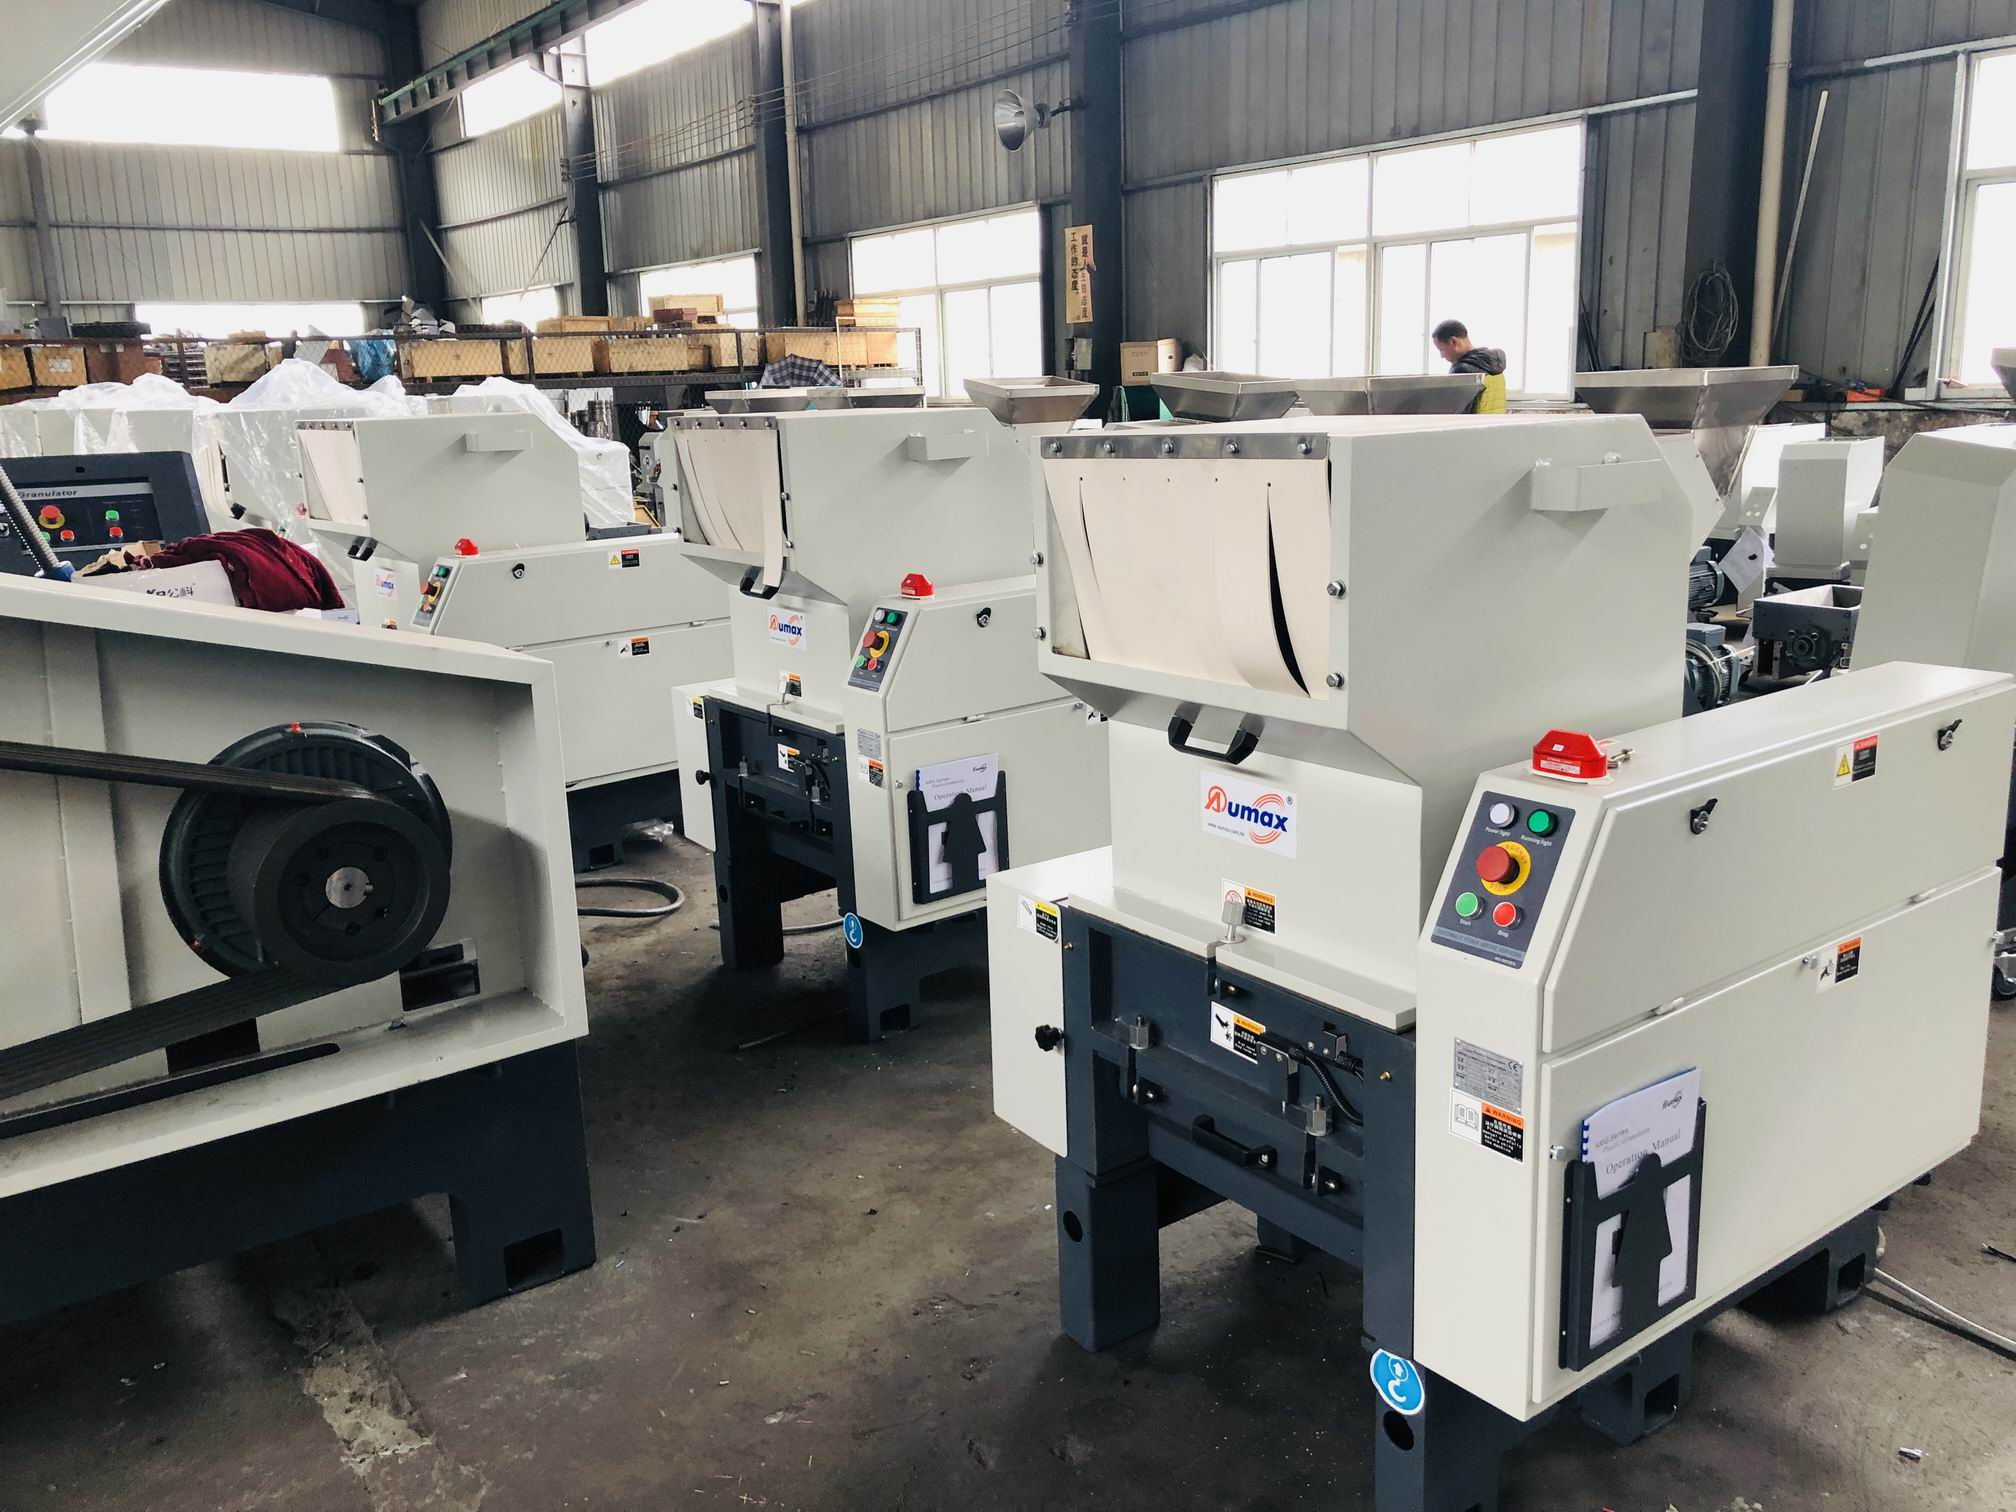 Inspection and mMaintenance of Plastic Crusher